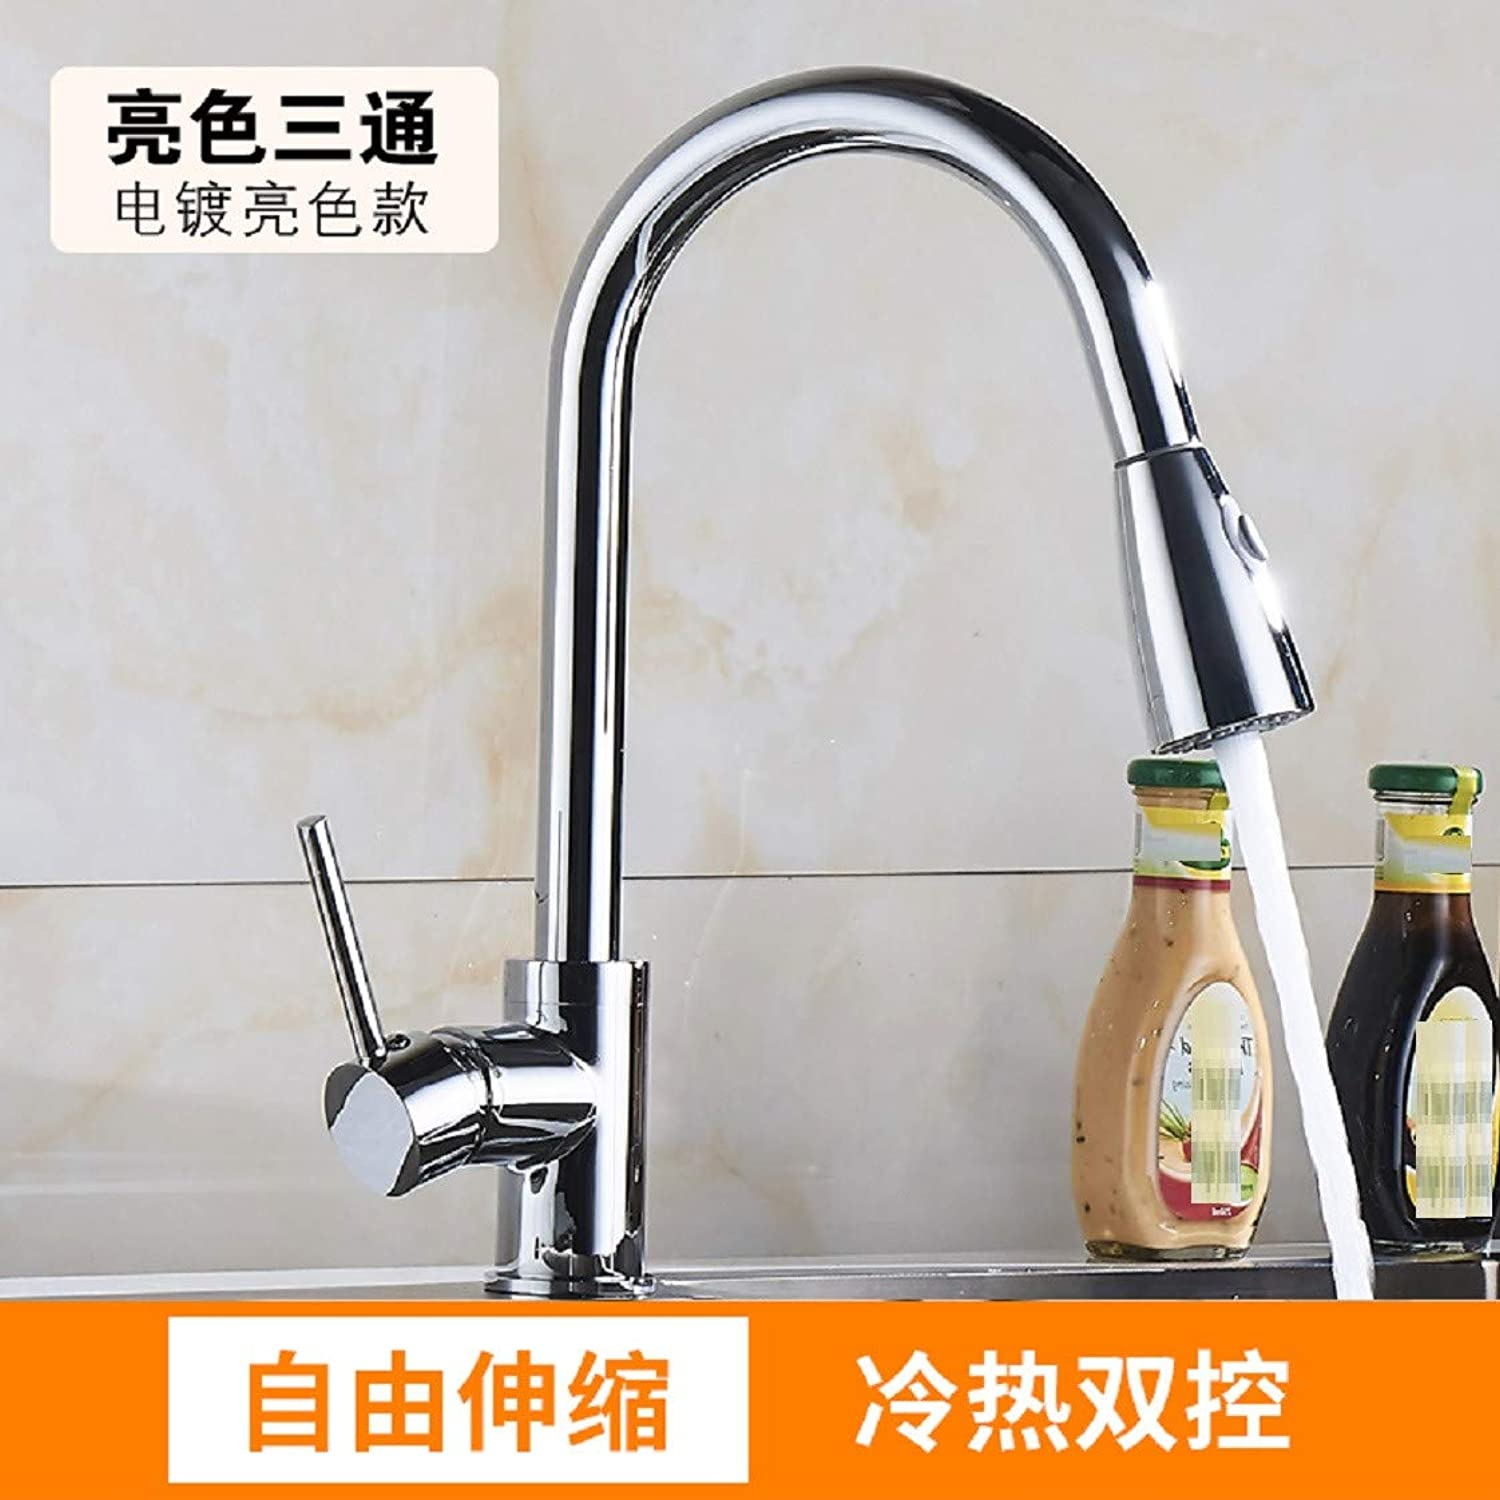 Kitchen Tap Sink, Hot and Cold Water Dishwasher, Expansion and redation Kitchen Taps Kitchen Sink Mixer Taps Basin Tap